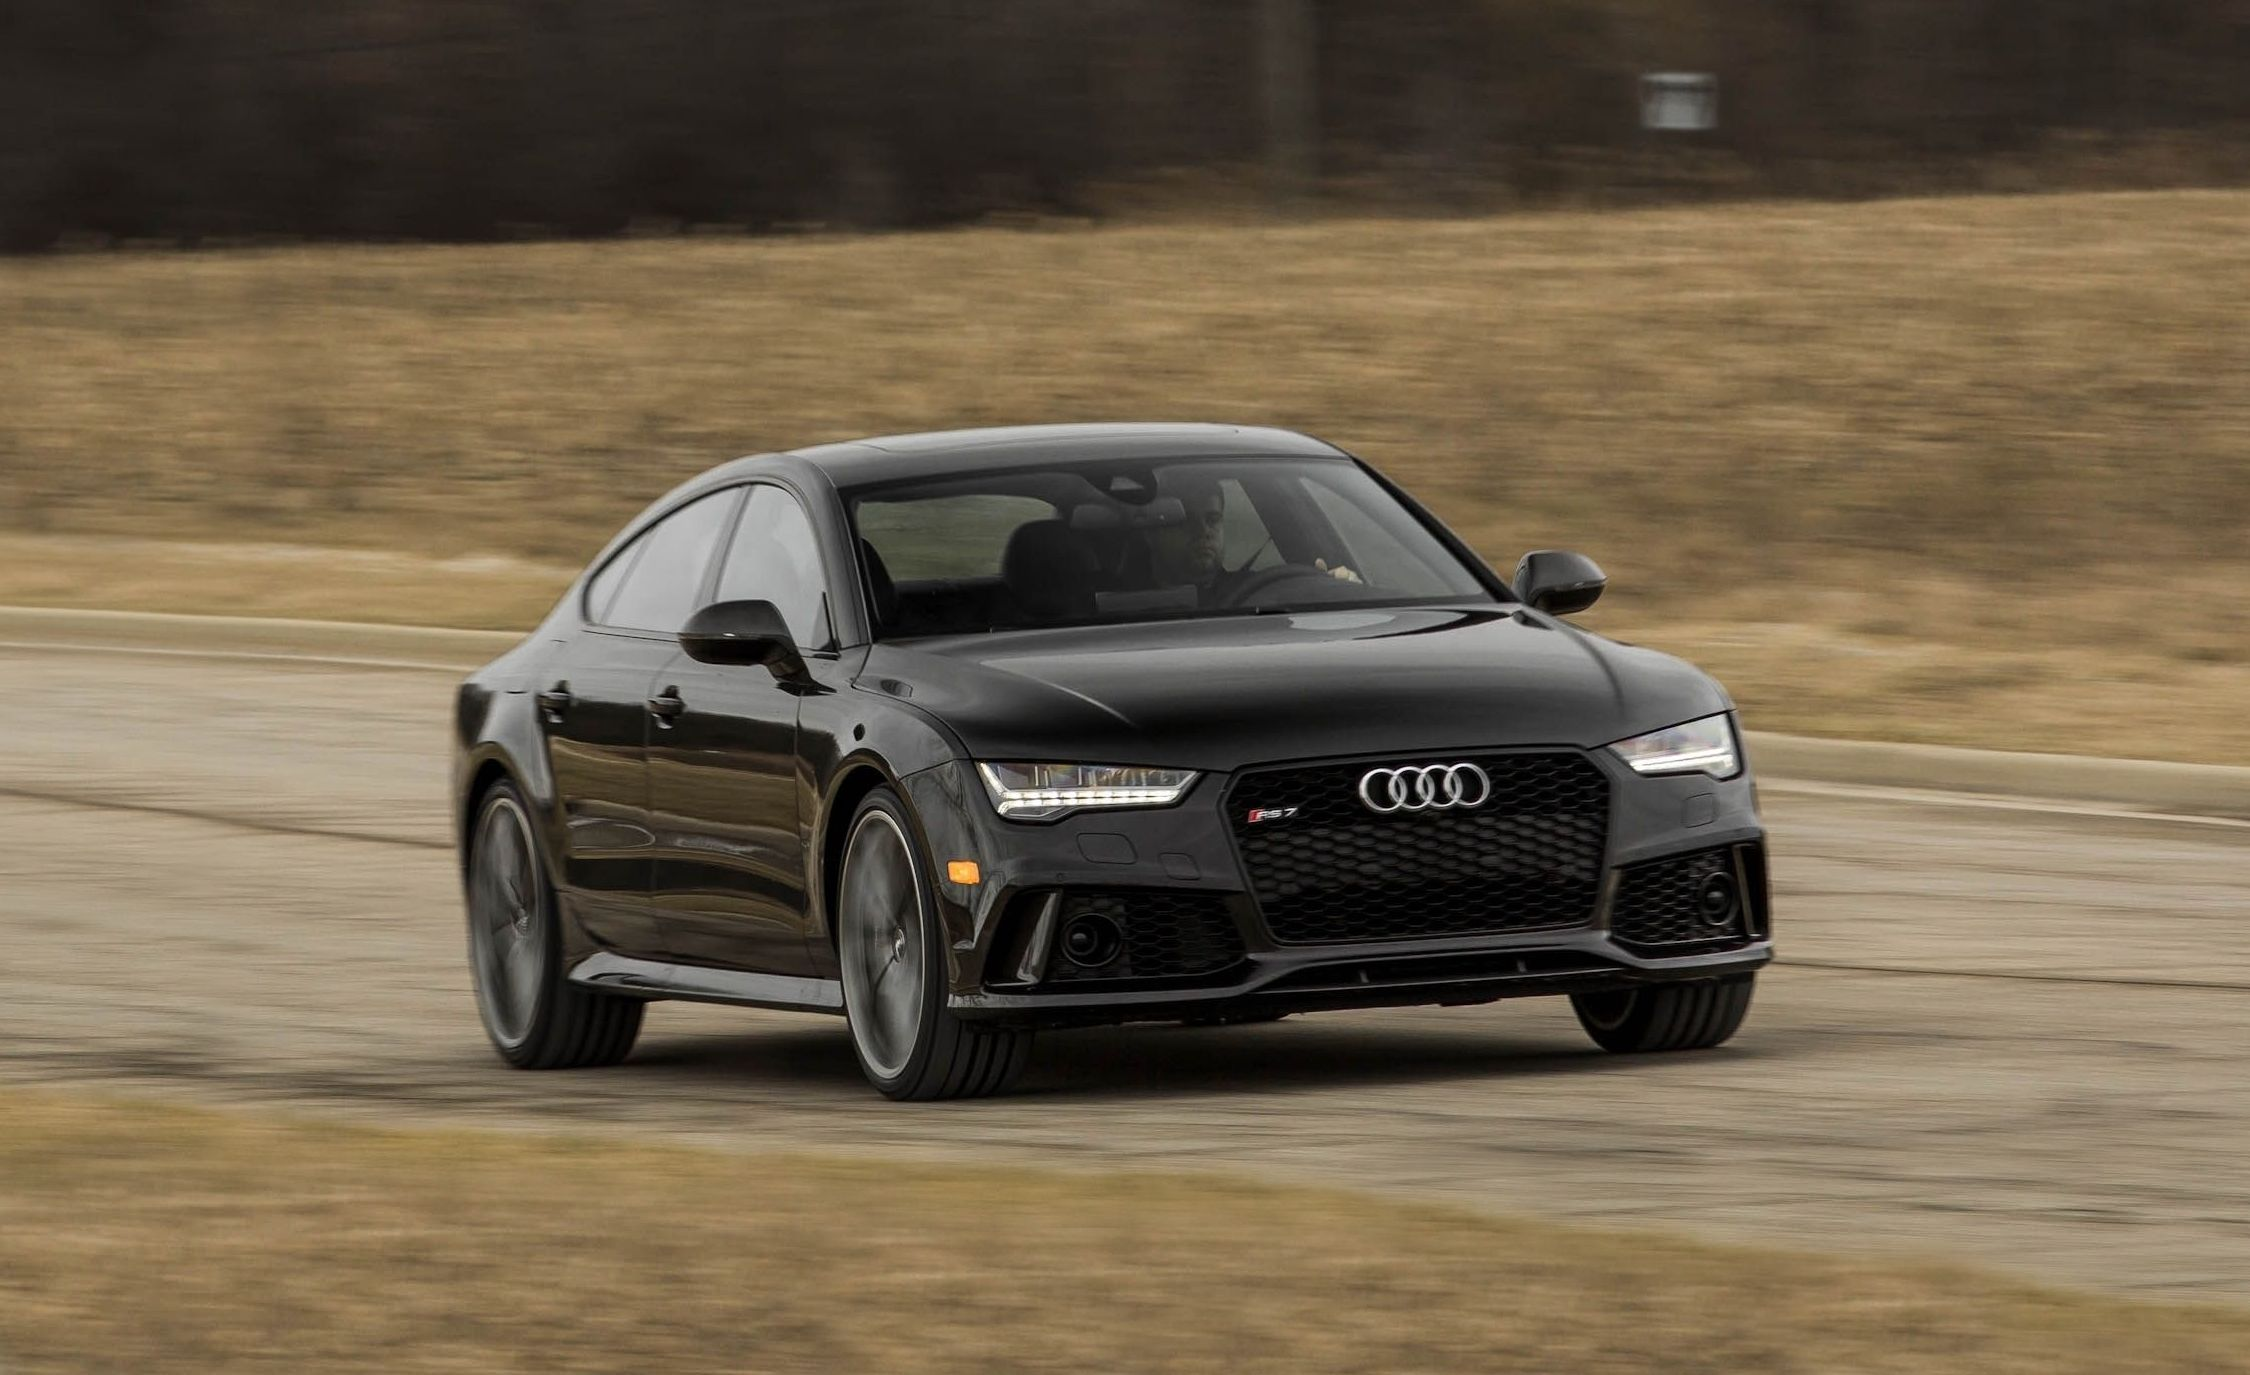 2018 Audi Rs7 Reviews Audi Rs7 Price Photos And Specs Car And